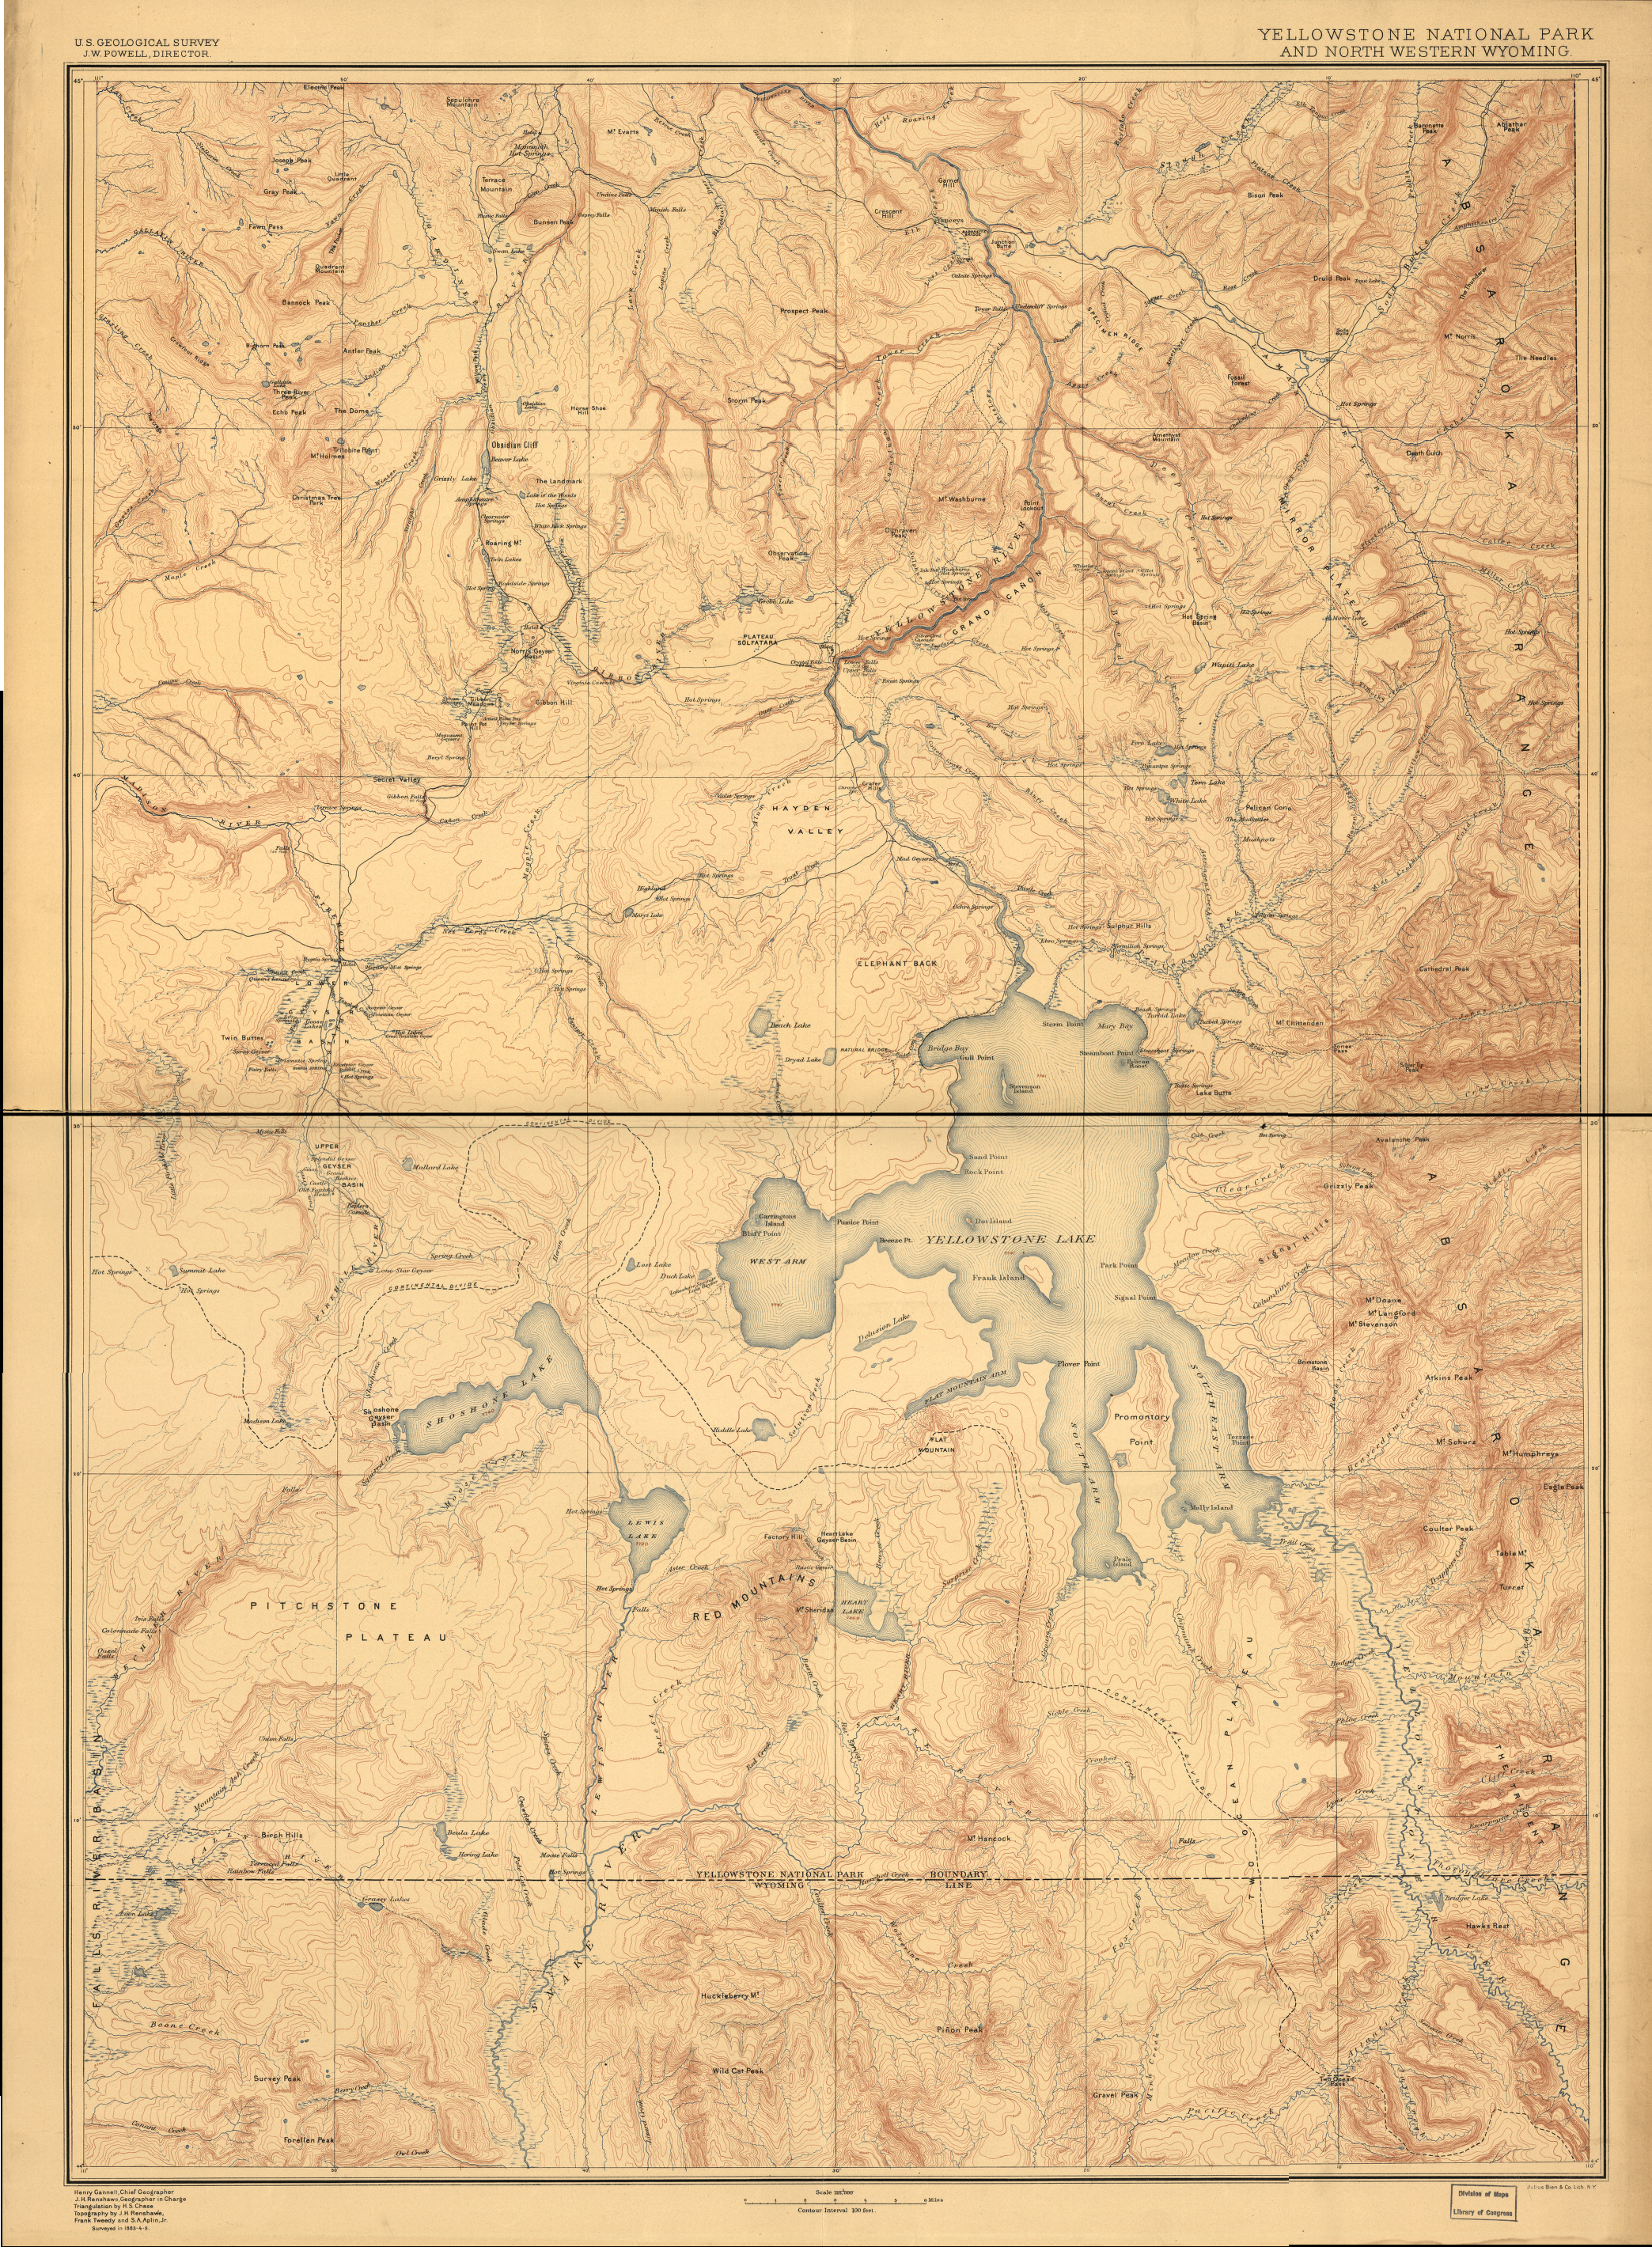 Yellowstone National Park 1883 Survey Map from the Library of Congress Collection